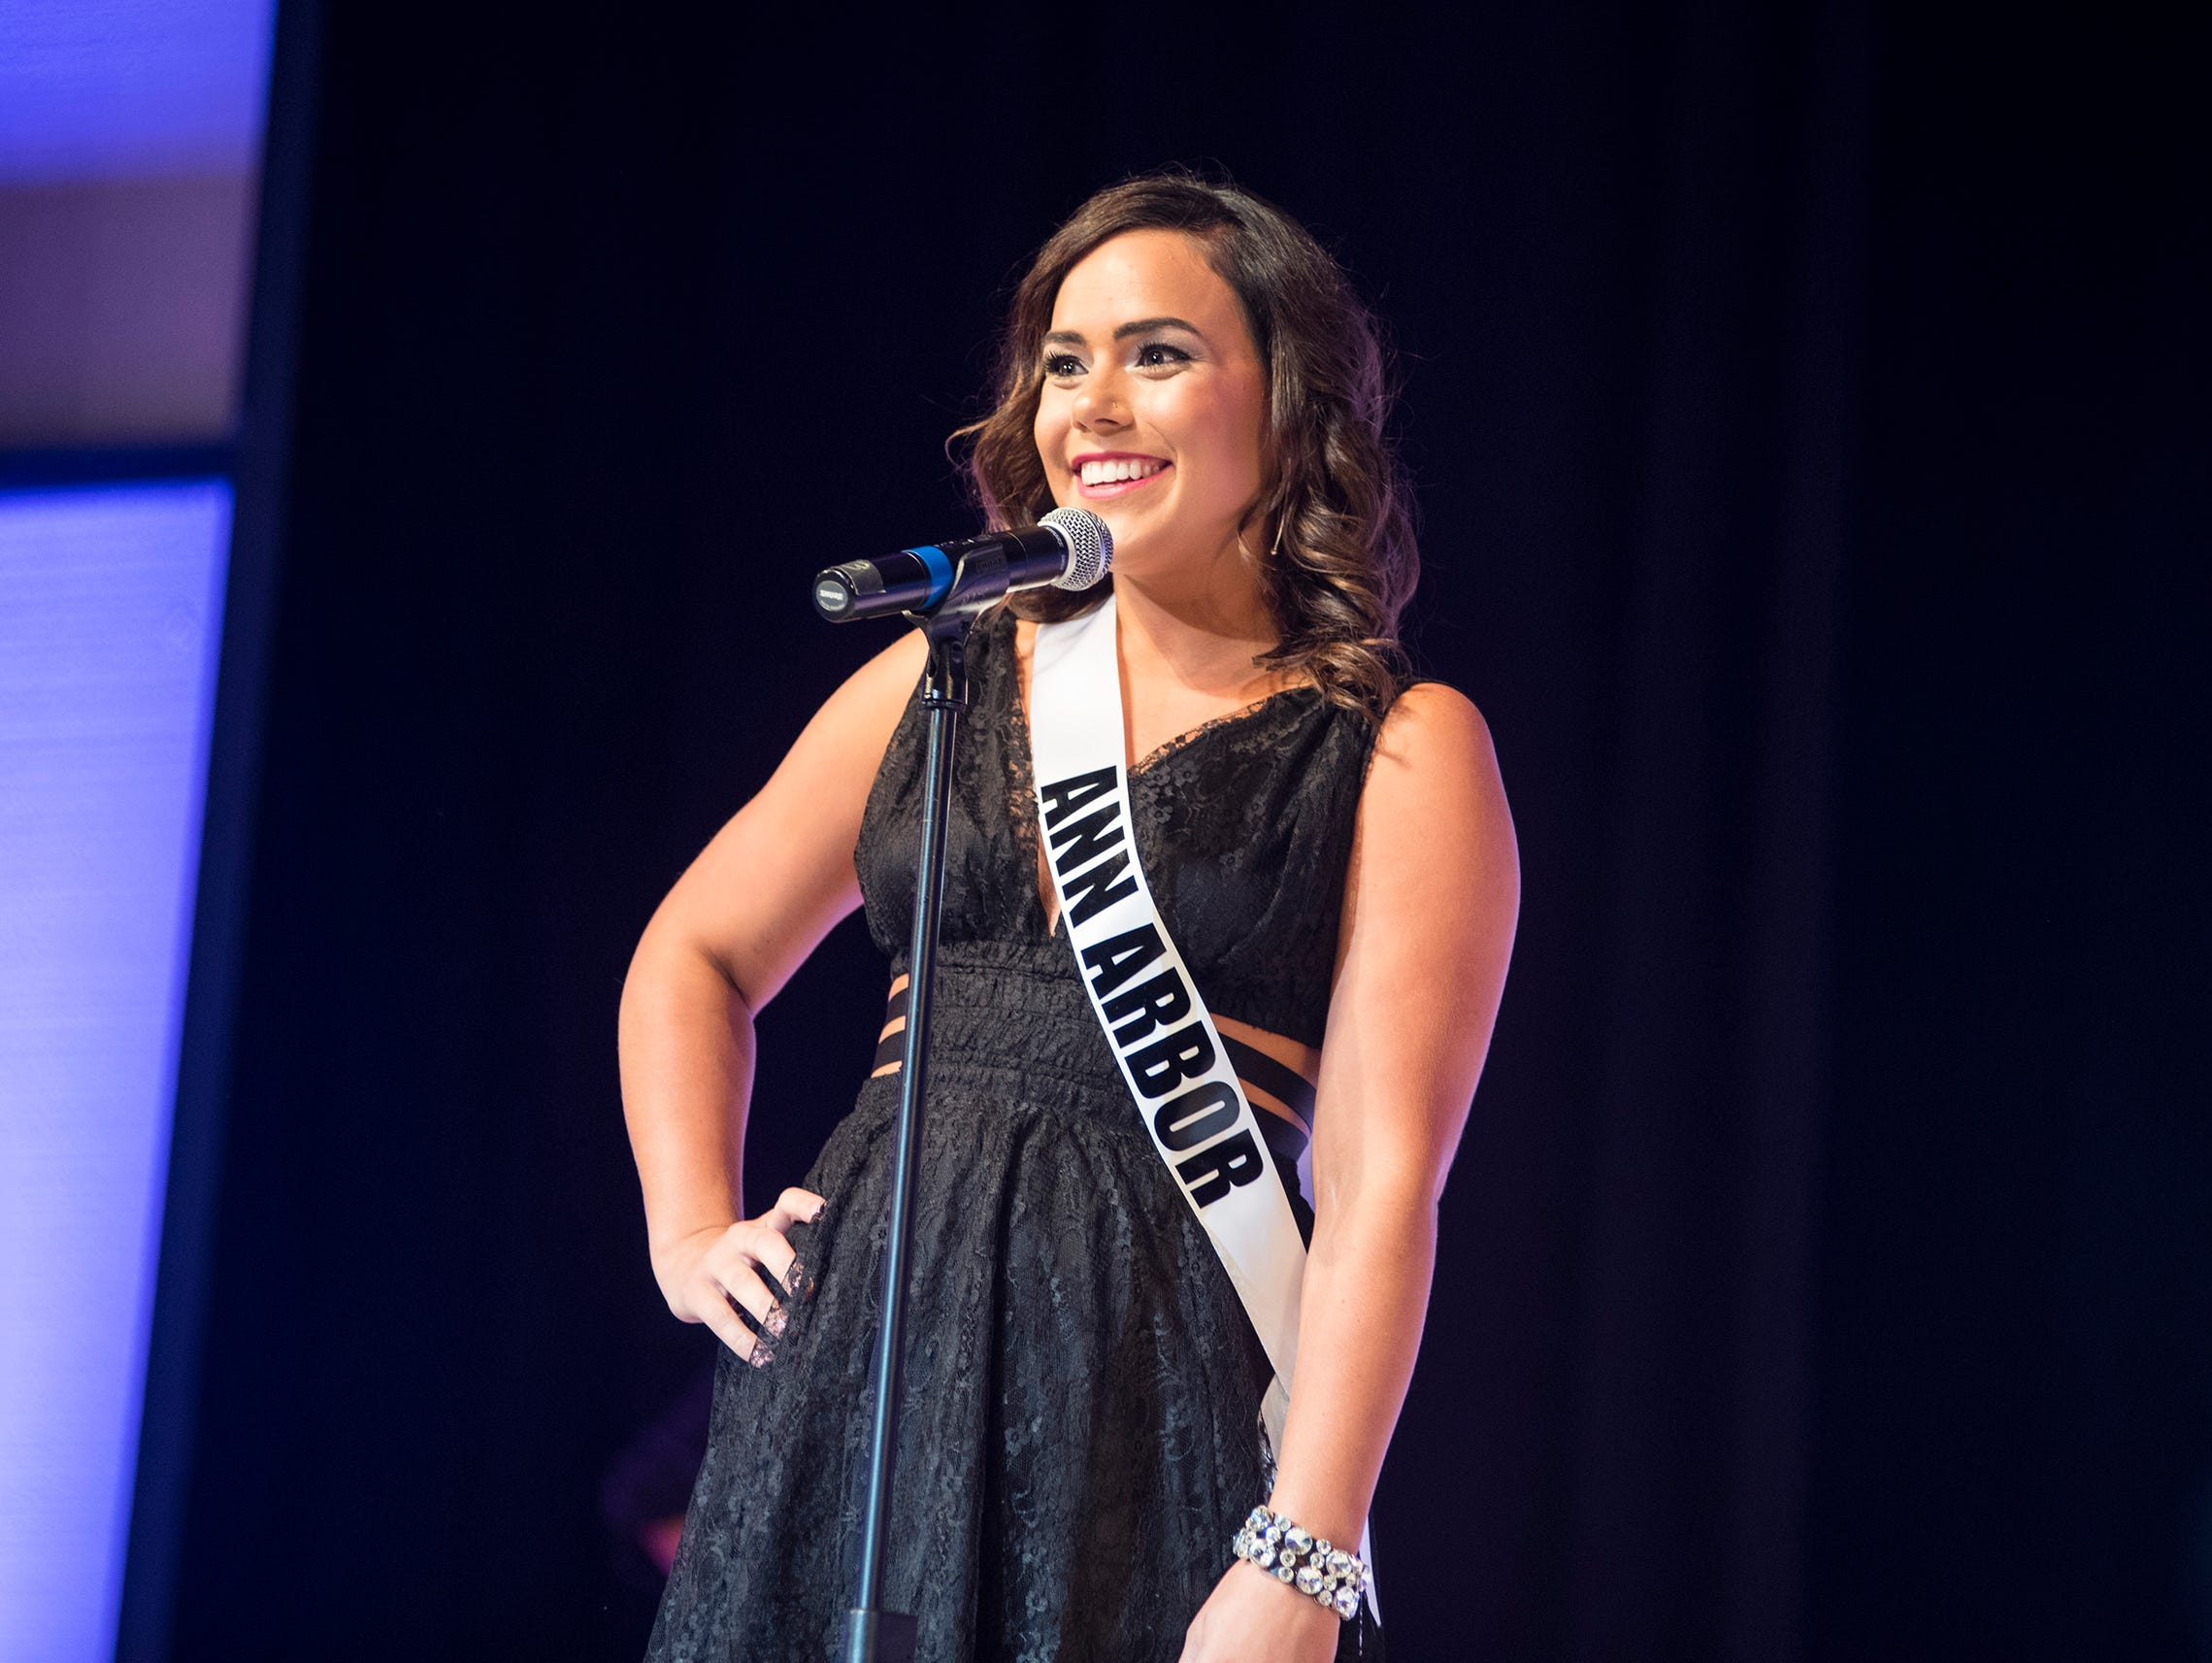 Miss Ann Arbor Laura Mejeur introduces herself Saturday, Sept. 22, 2018 at the start of the Miss Michigan USA competition at McMorran Theater.